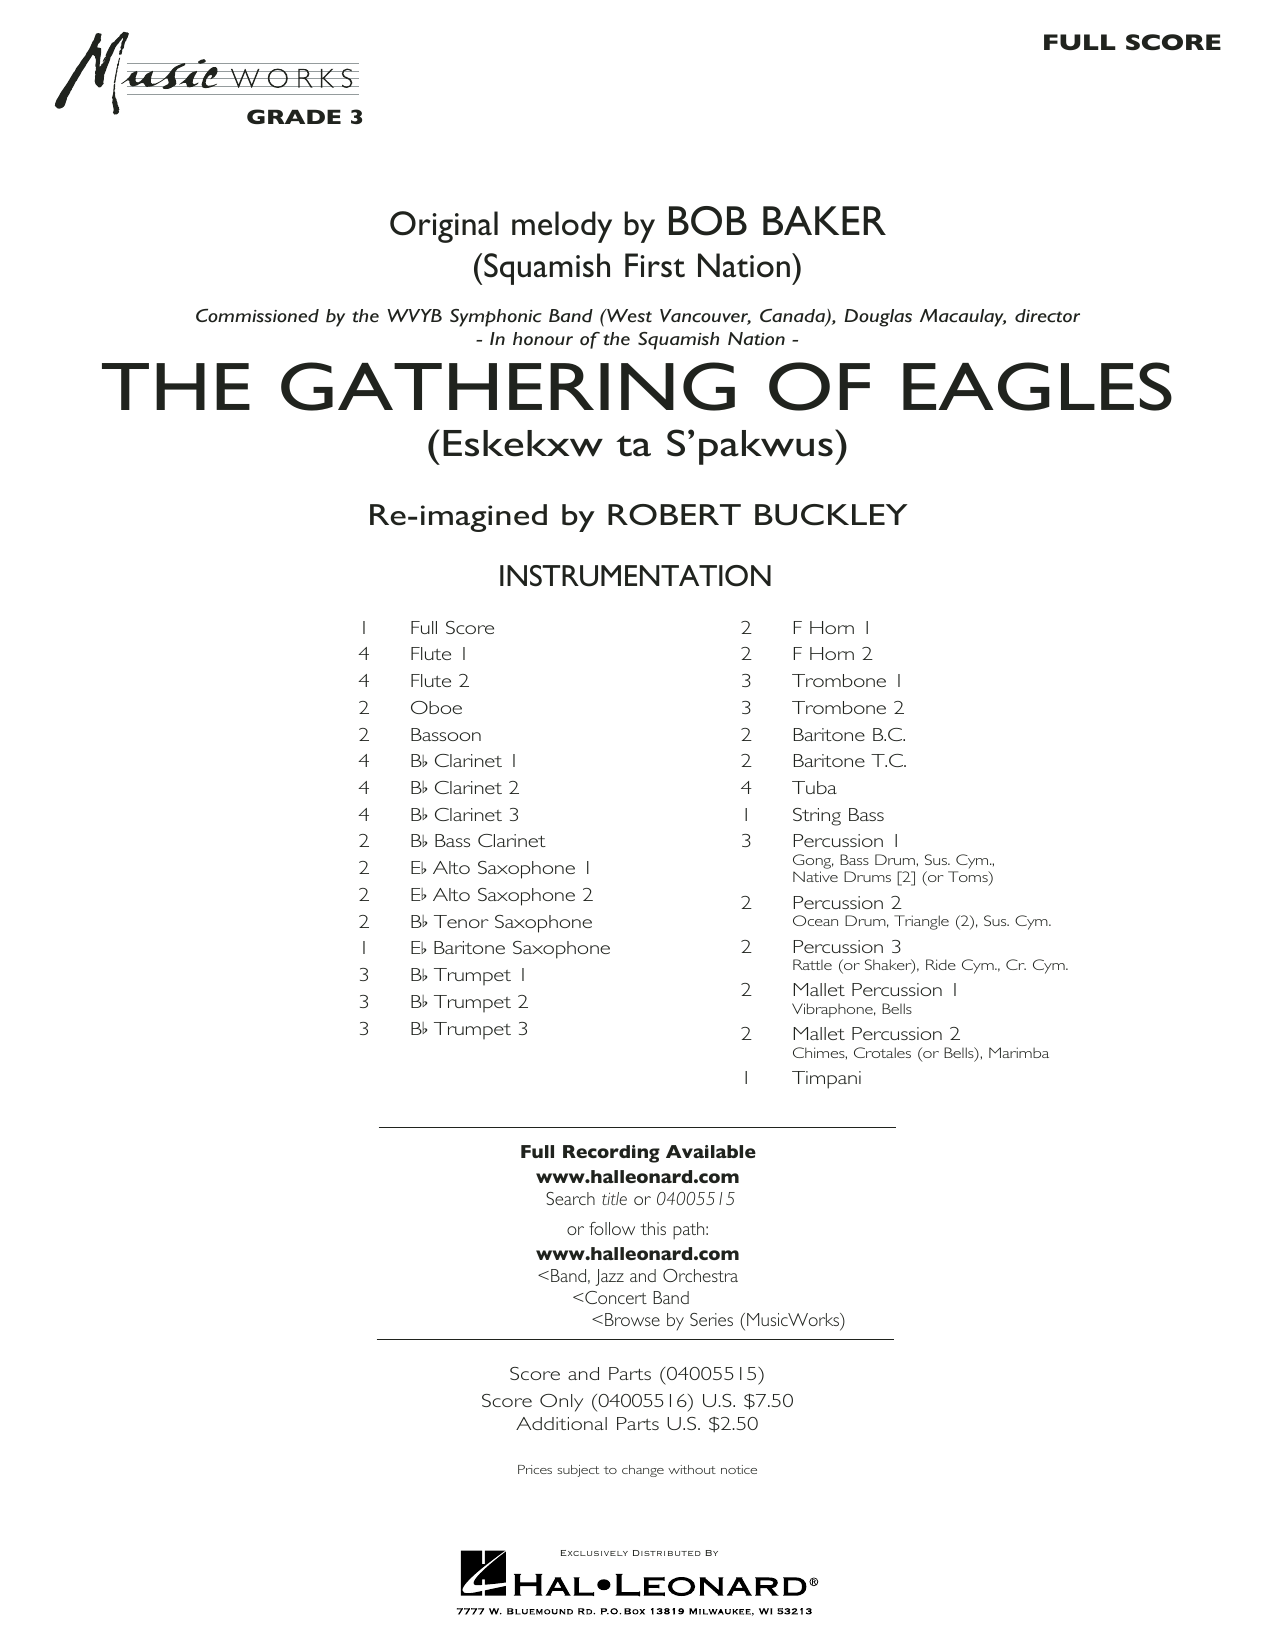 The Gathering of Eagles - Conductor Score (Full Score) (Concert Band)